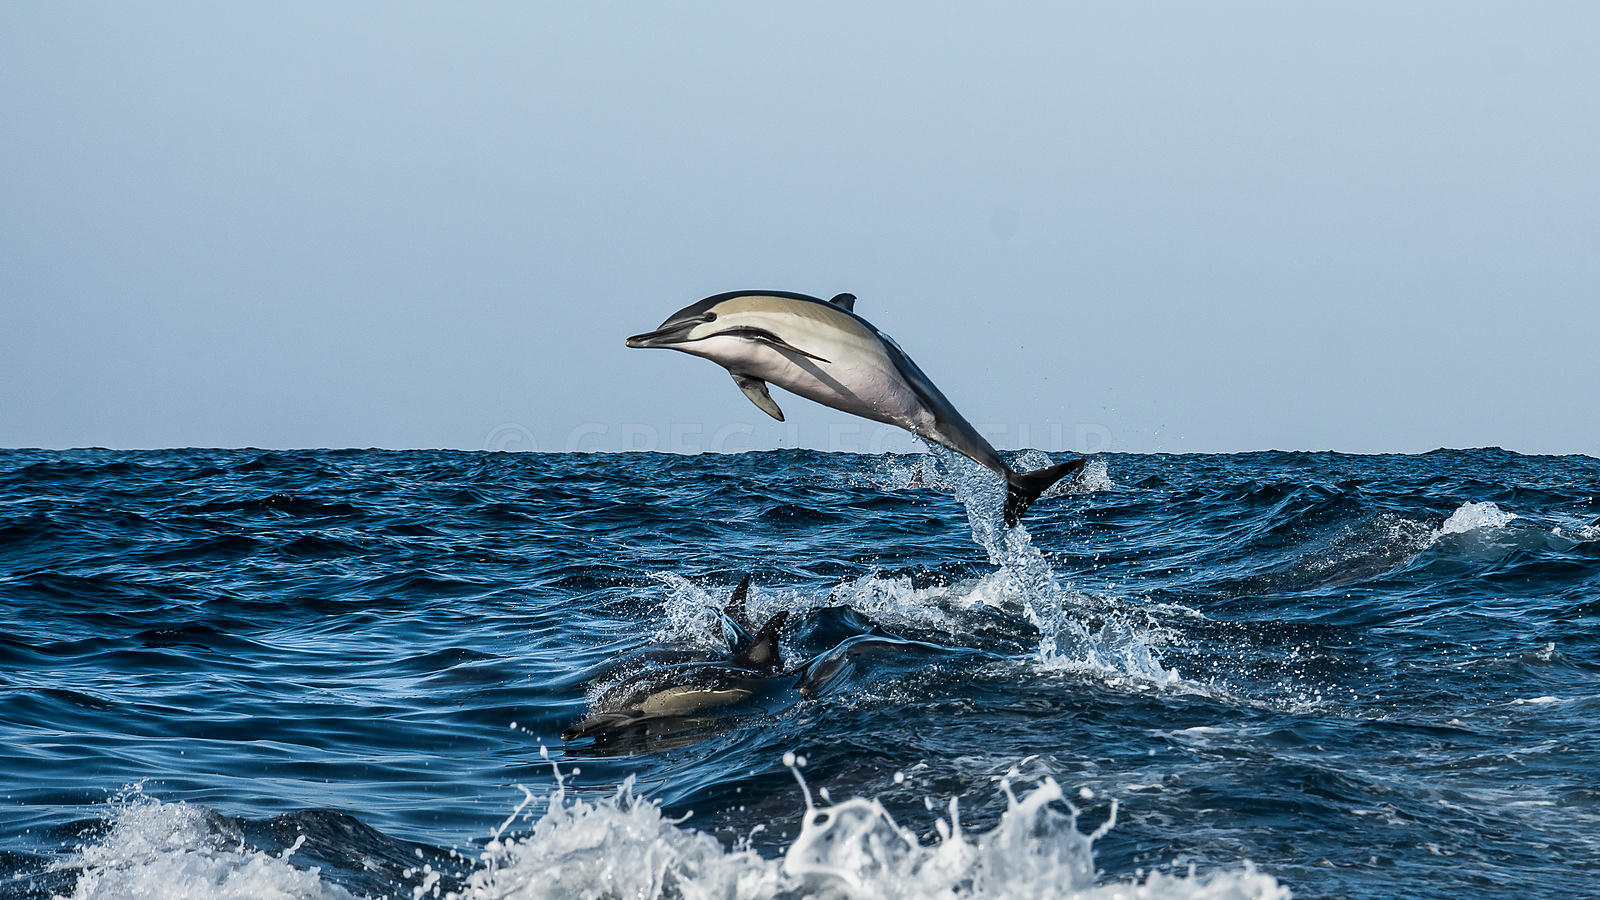 Sardine Run 2016, Common dolphins